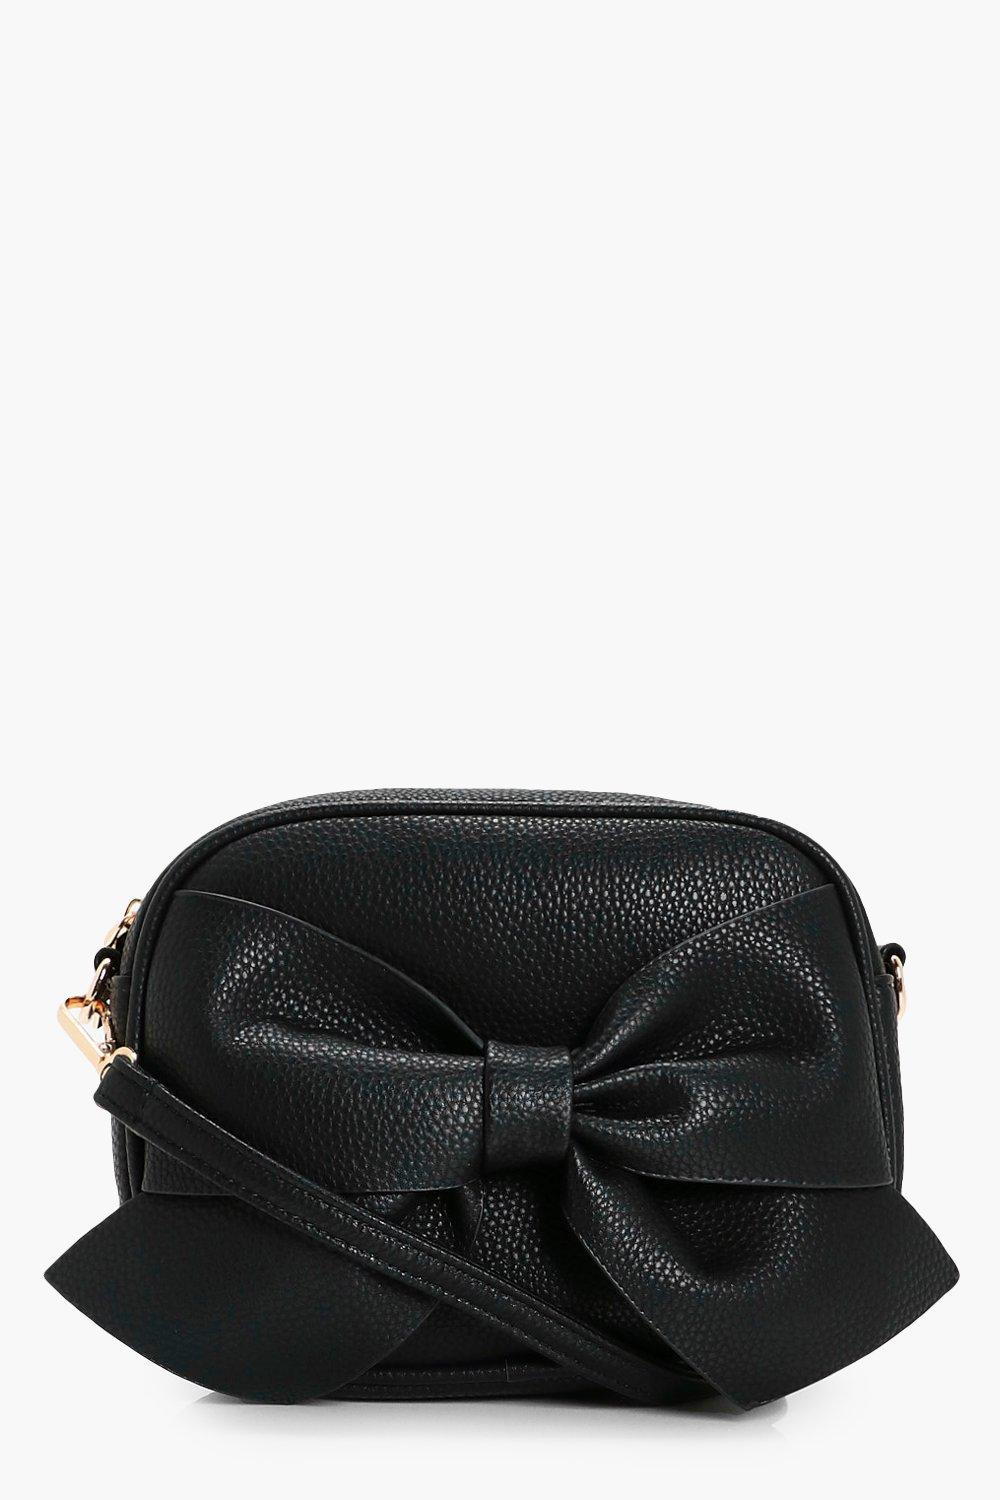 Bow Front Cross Body Bag - black - Millie Bow Fron